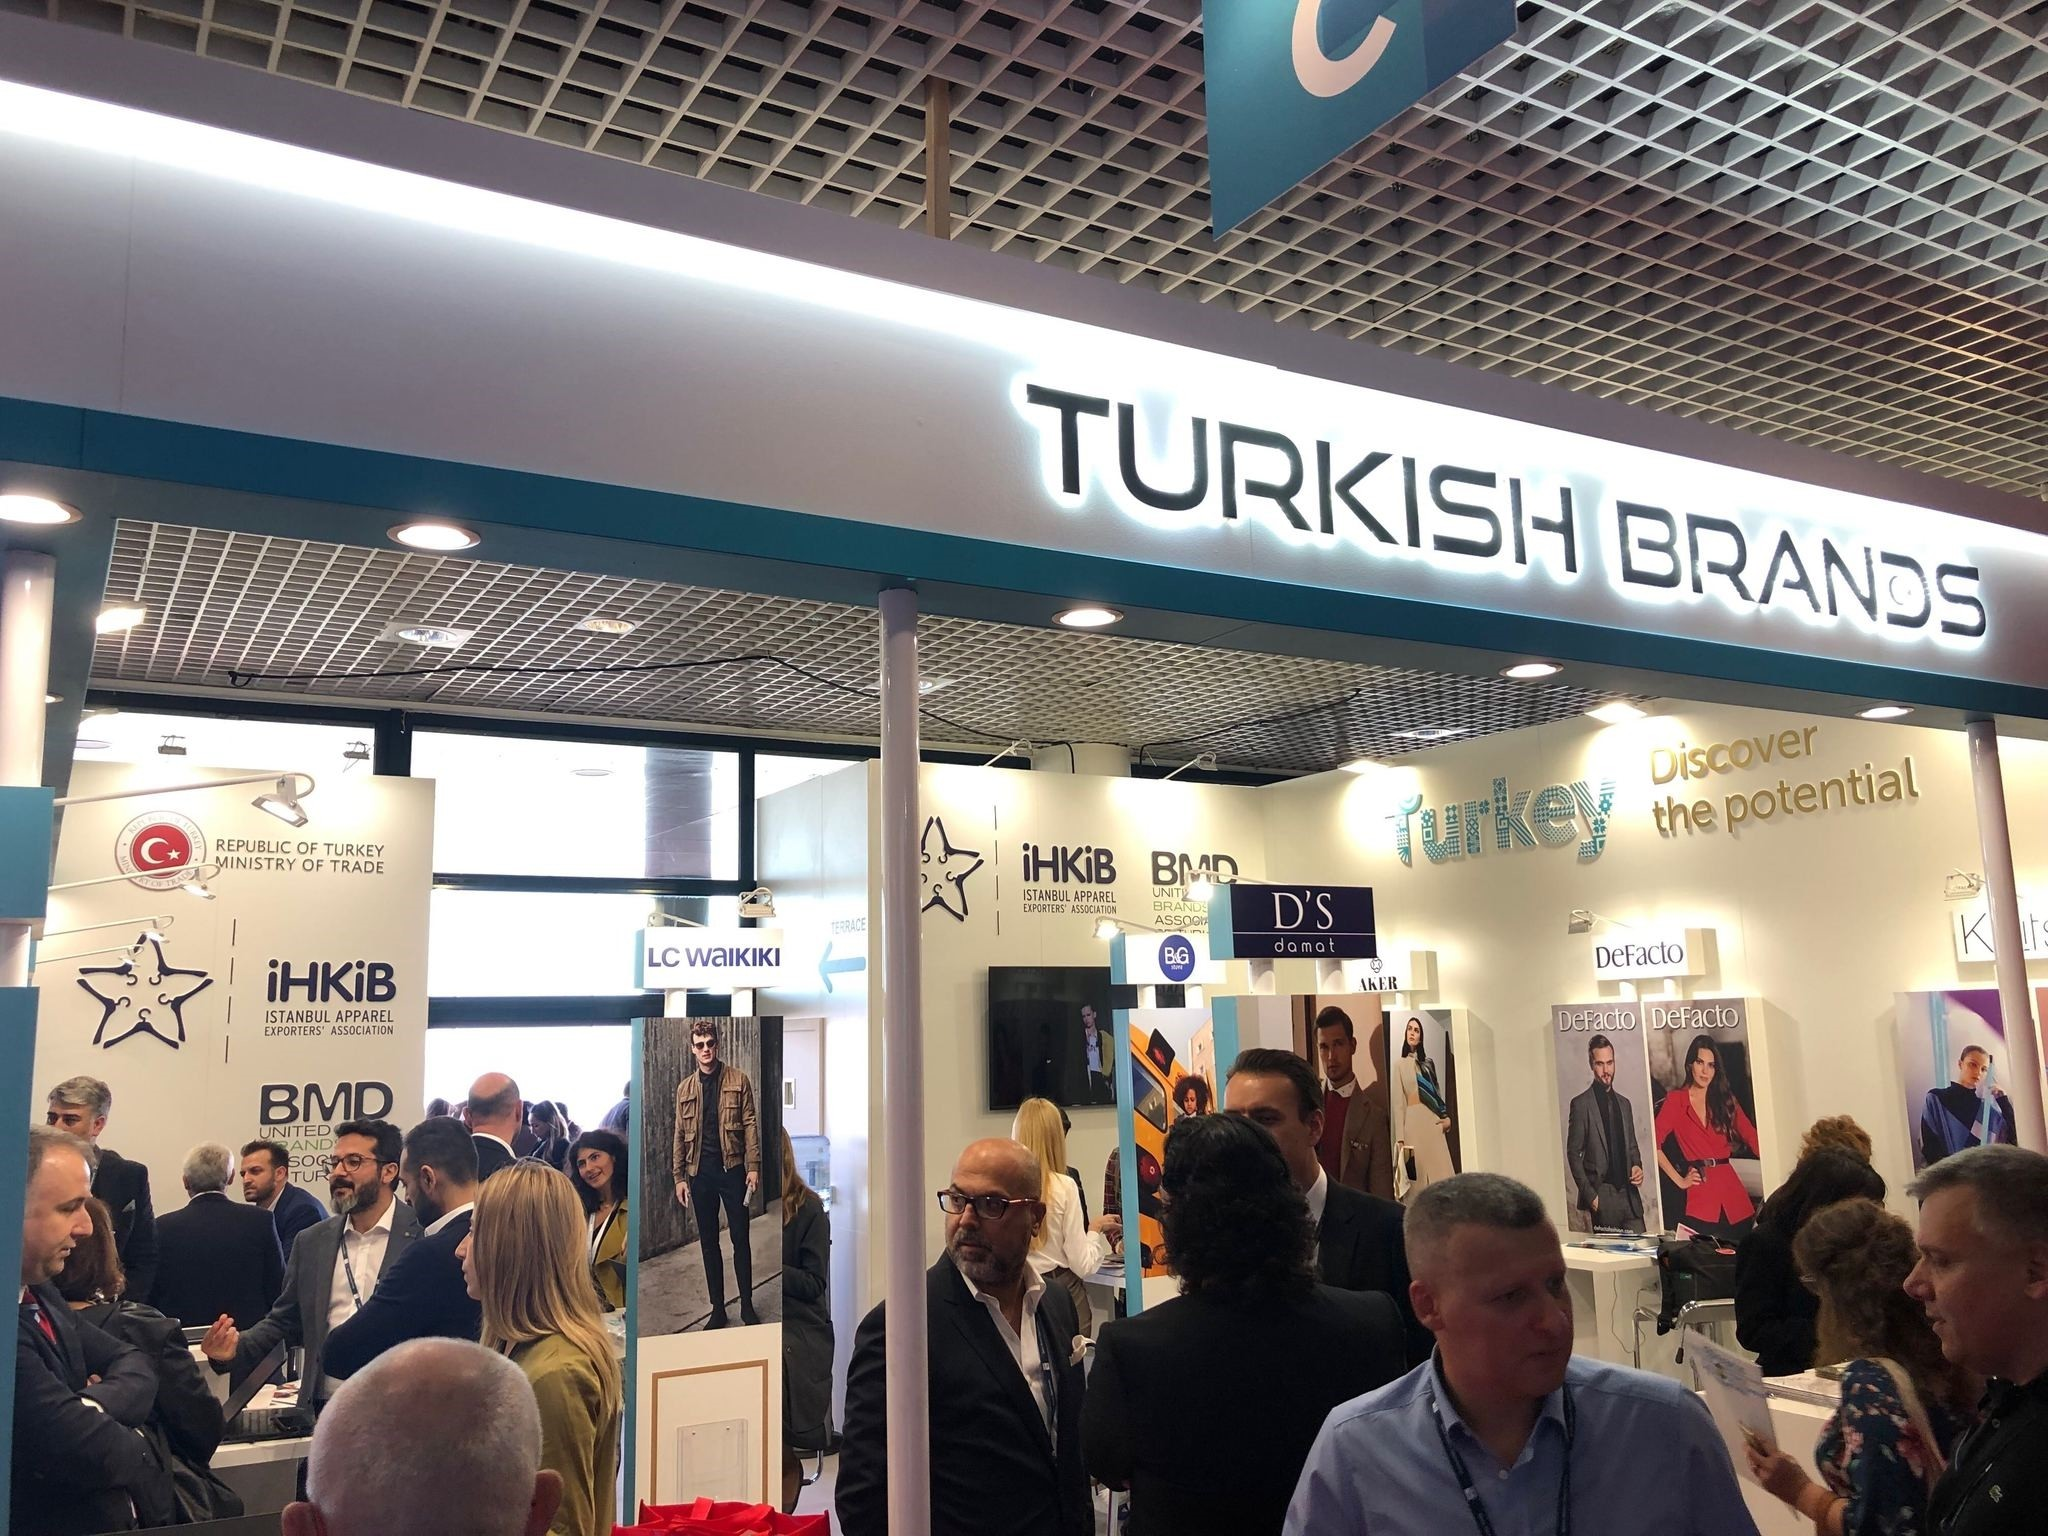 Turkish Brands booth at Mapic '18 in Cannes, France, Nov. 14, 2018.